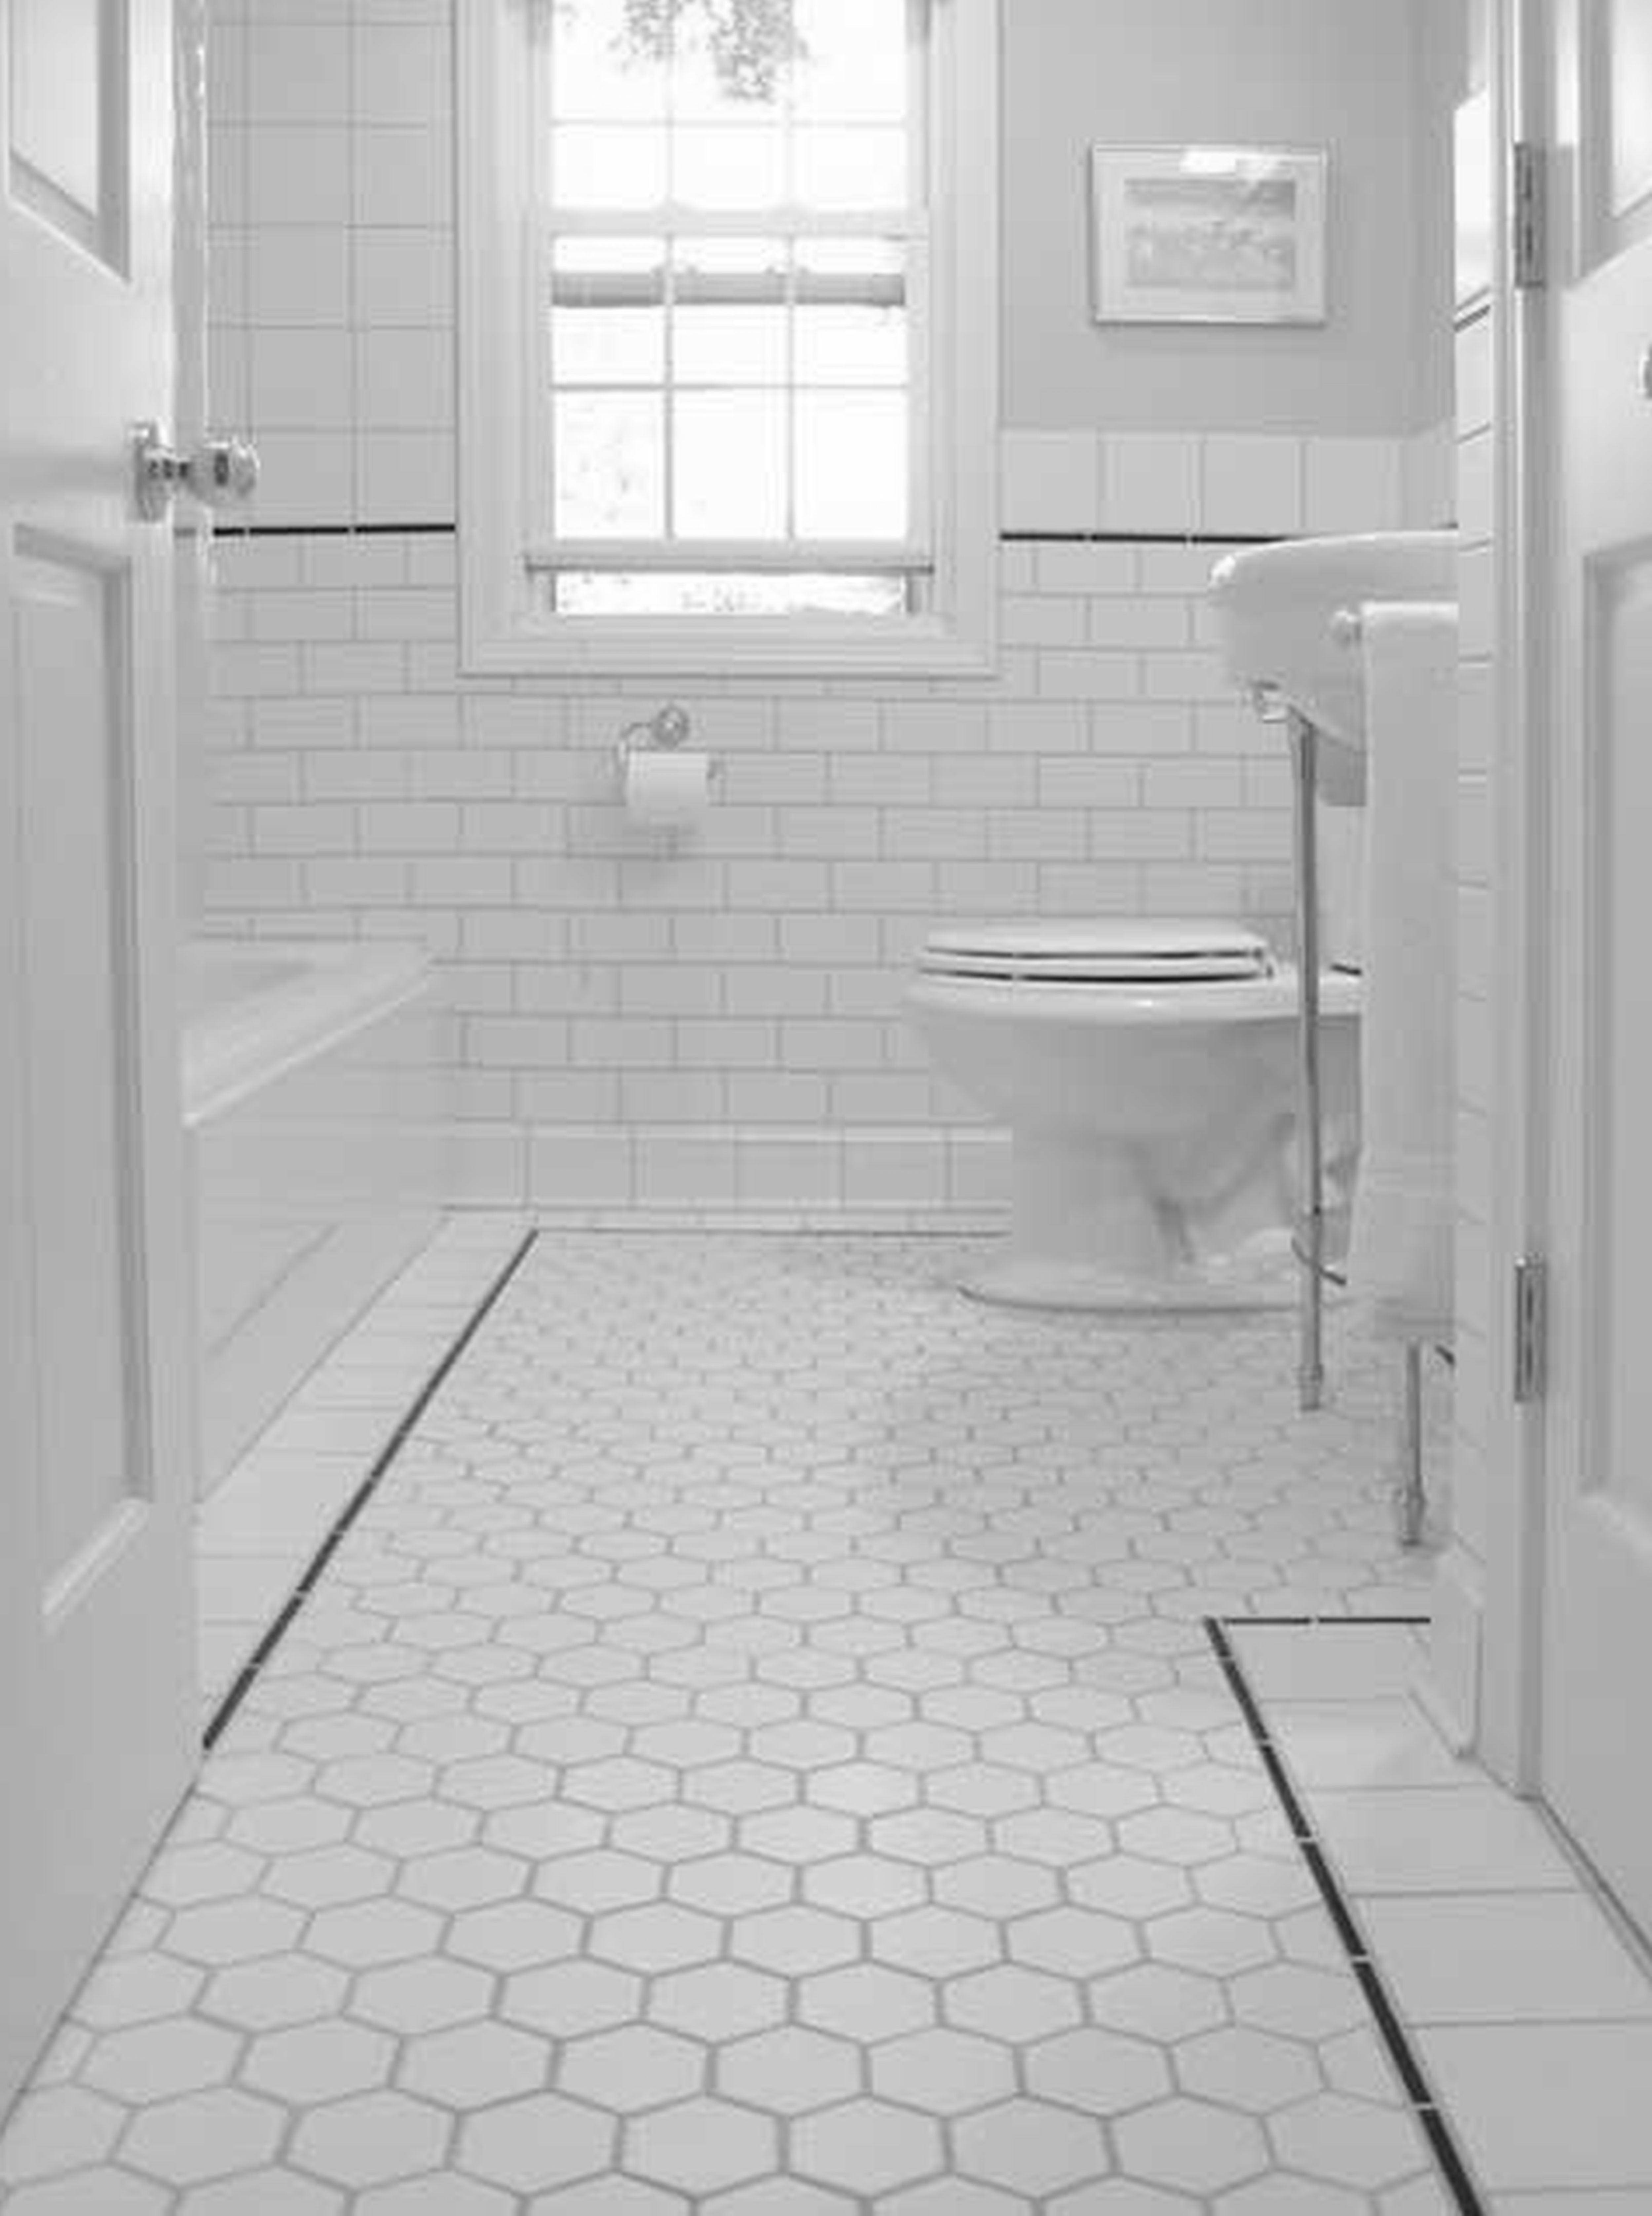 How to decorate a small bathroom in black and white - Attractive Small Bathroom Renovations Combination Foxy Decorating